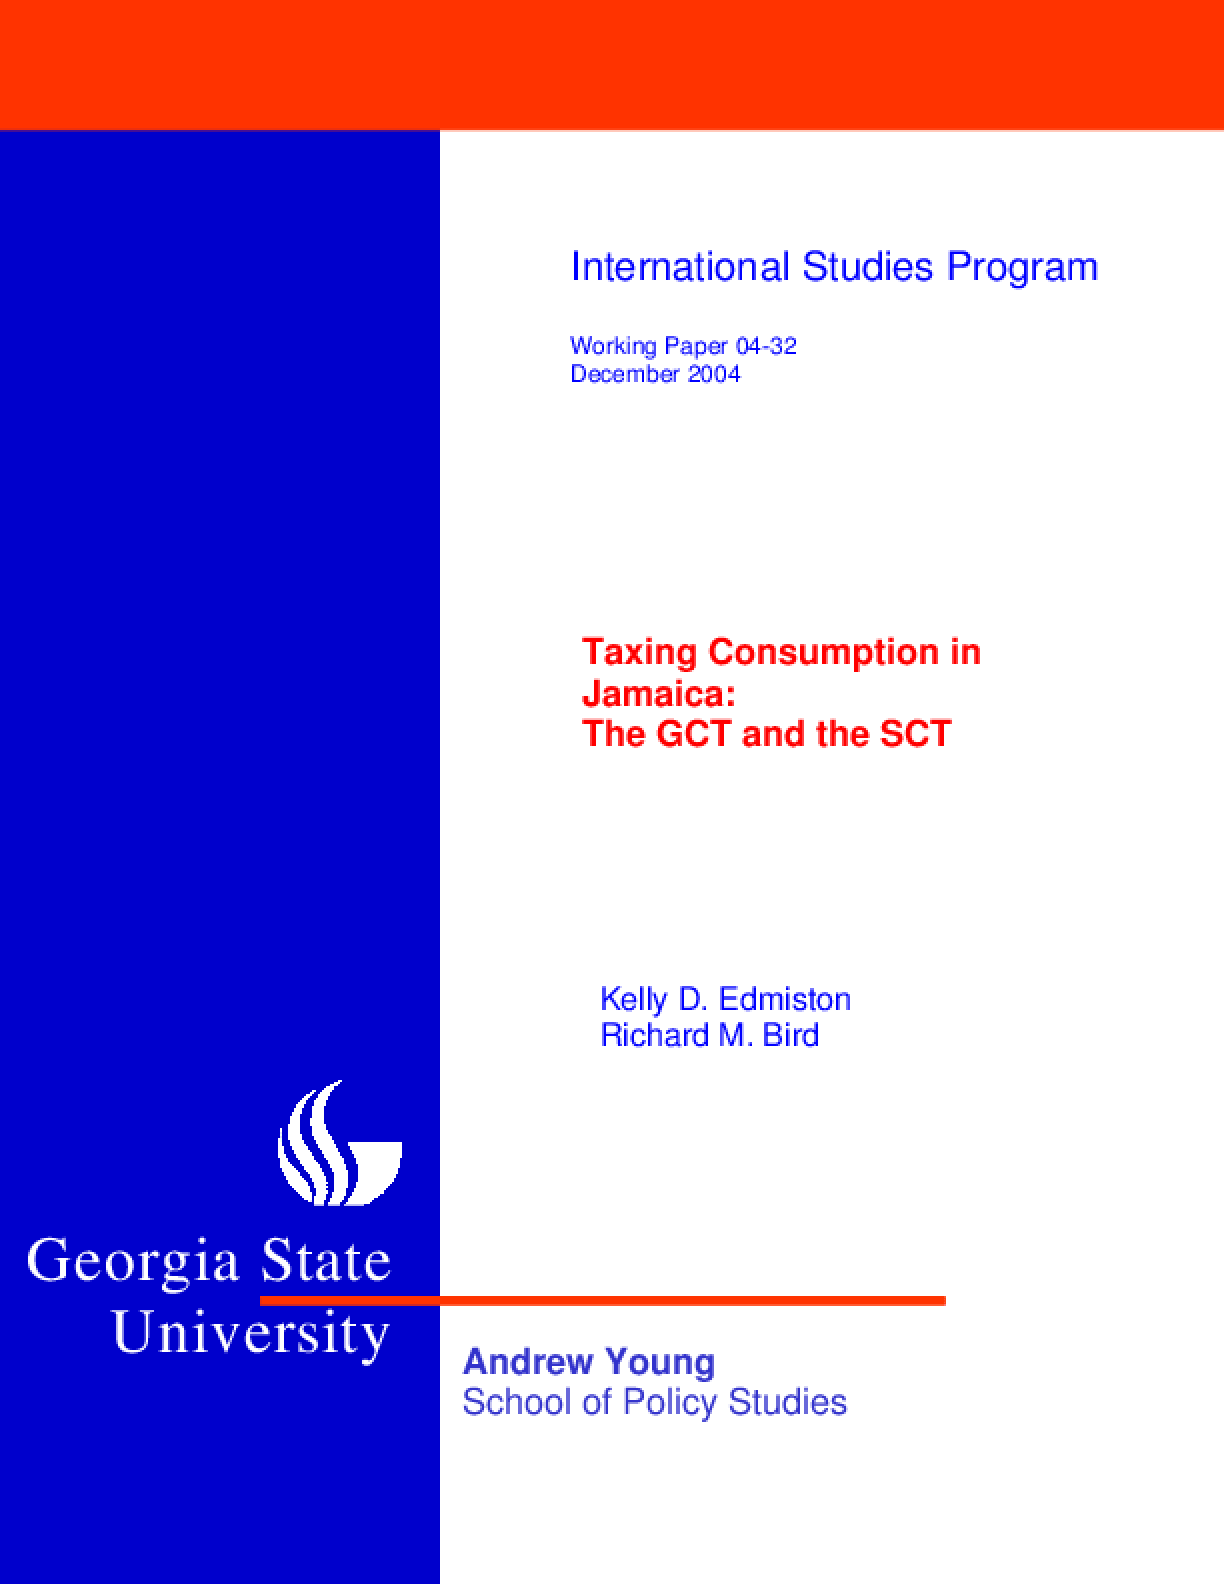 Taxing Consumption in Jamaica: the GCT and the SCT